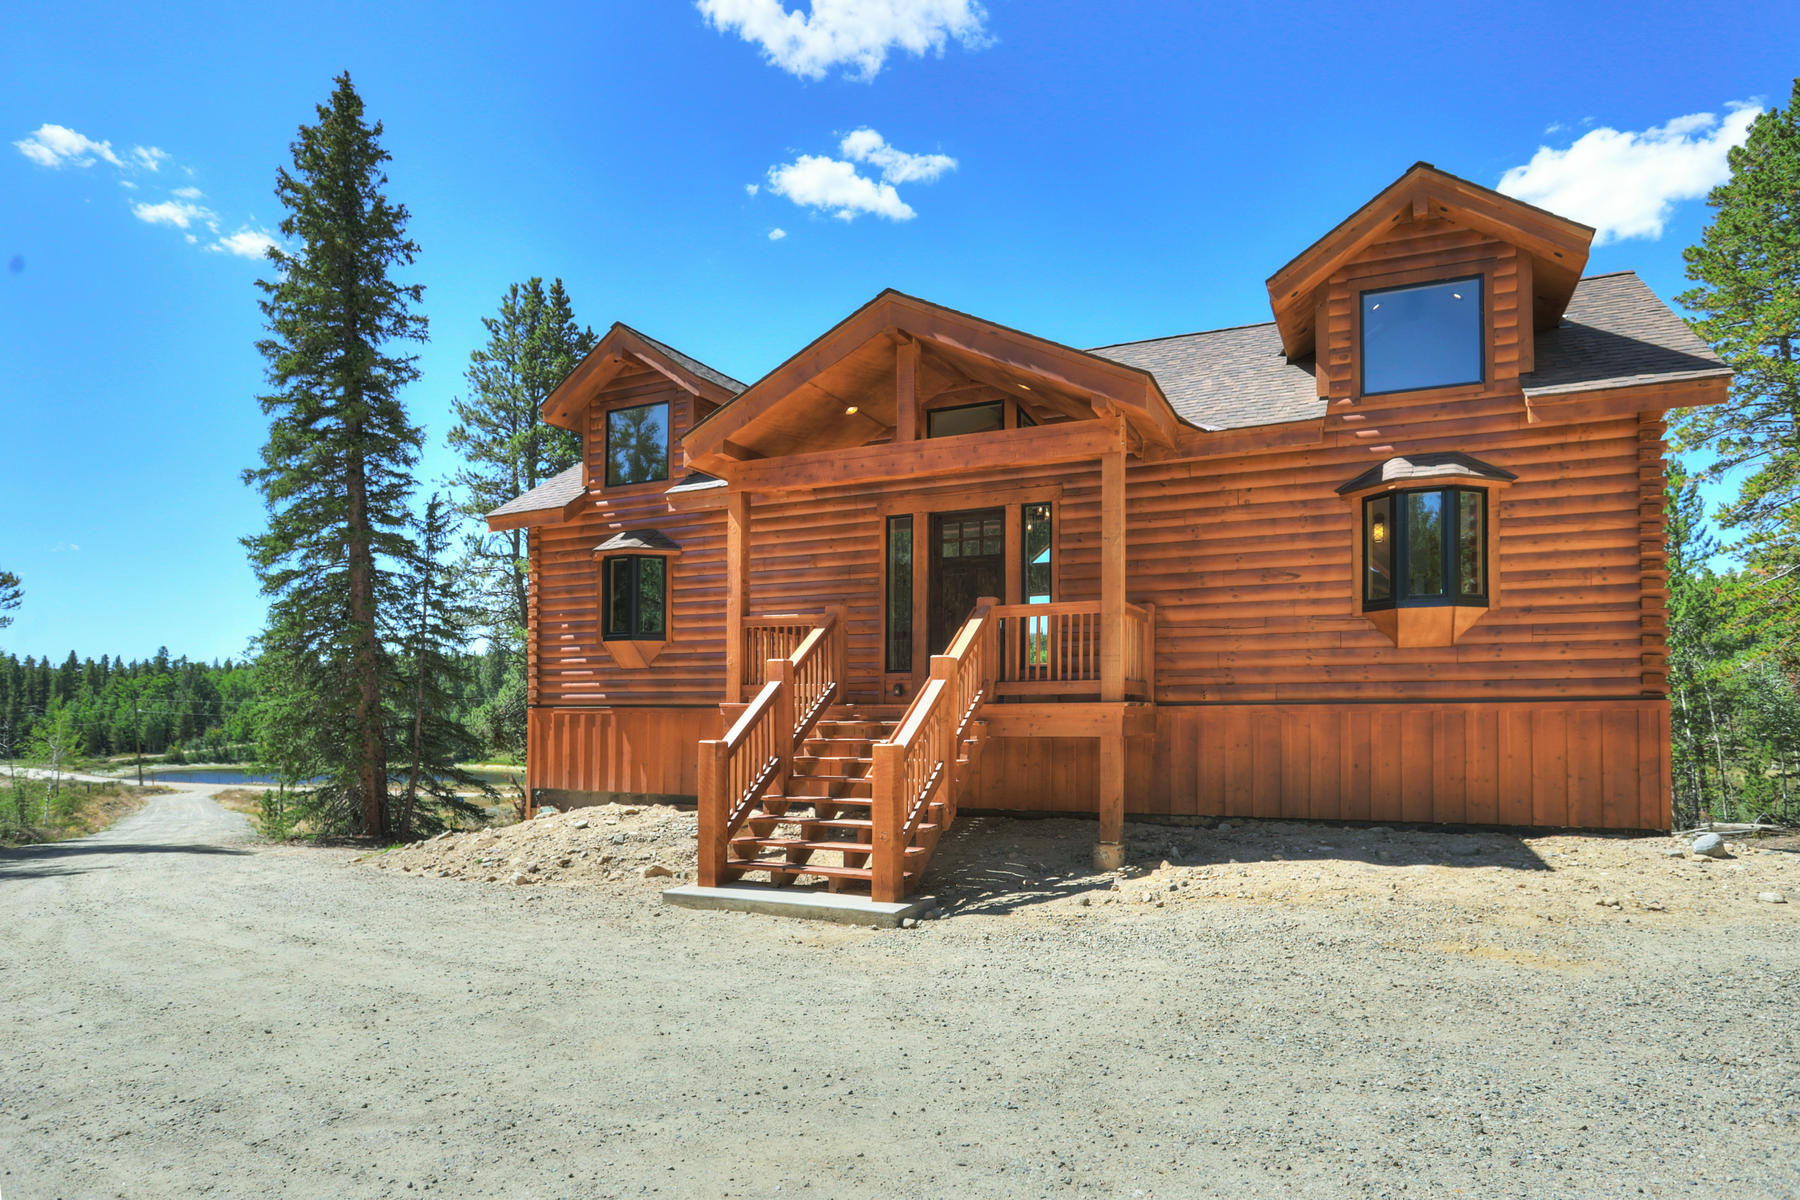 Single Family Homes for Sale at Big Sky Builders Log Home 1477 Lakeside Drive Alma, Colorado 80420 United States